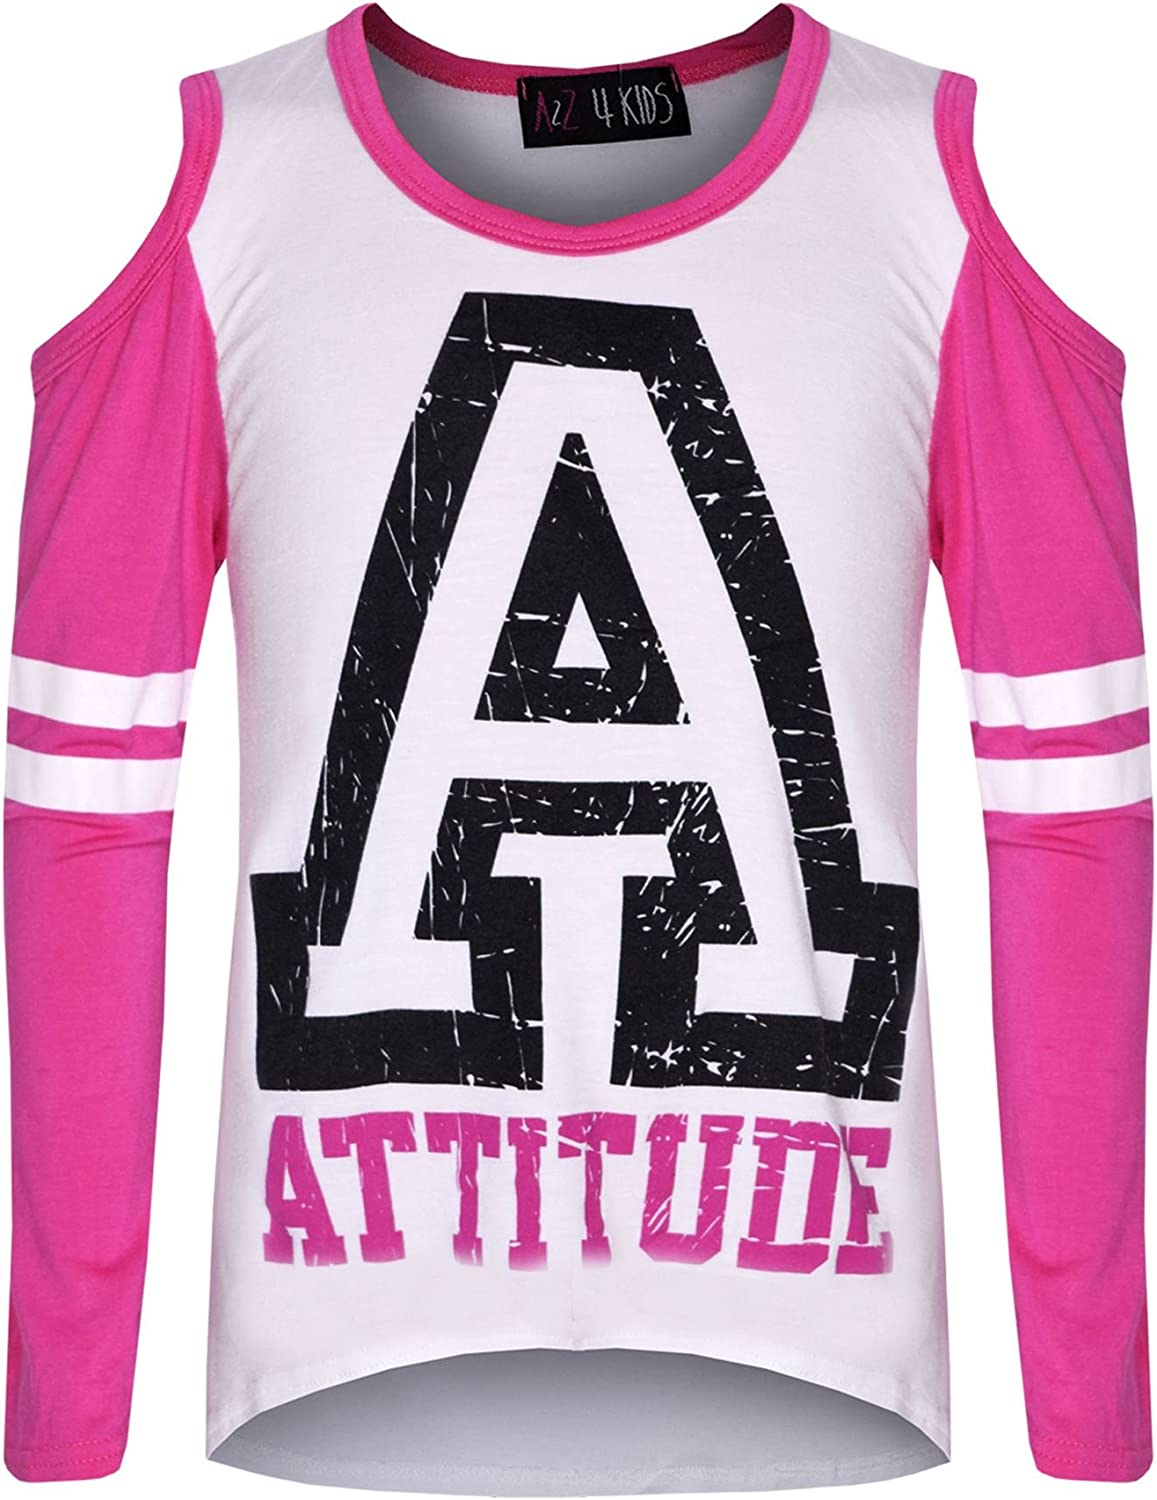 A2Z 4 Kids/® Girls Top Kids Attitude Print Trendy Top /& Fashion Legging Set Age 7 8 9 10 11 12 13 Years